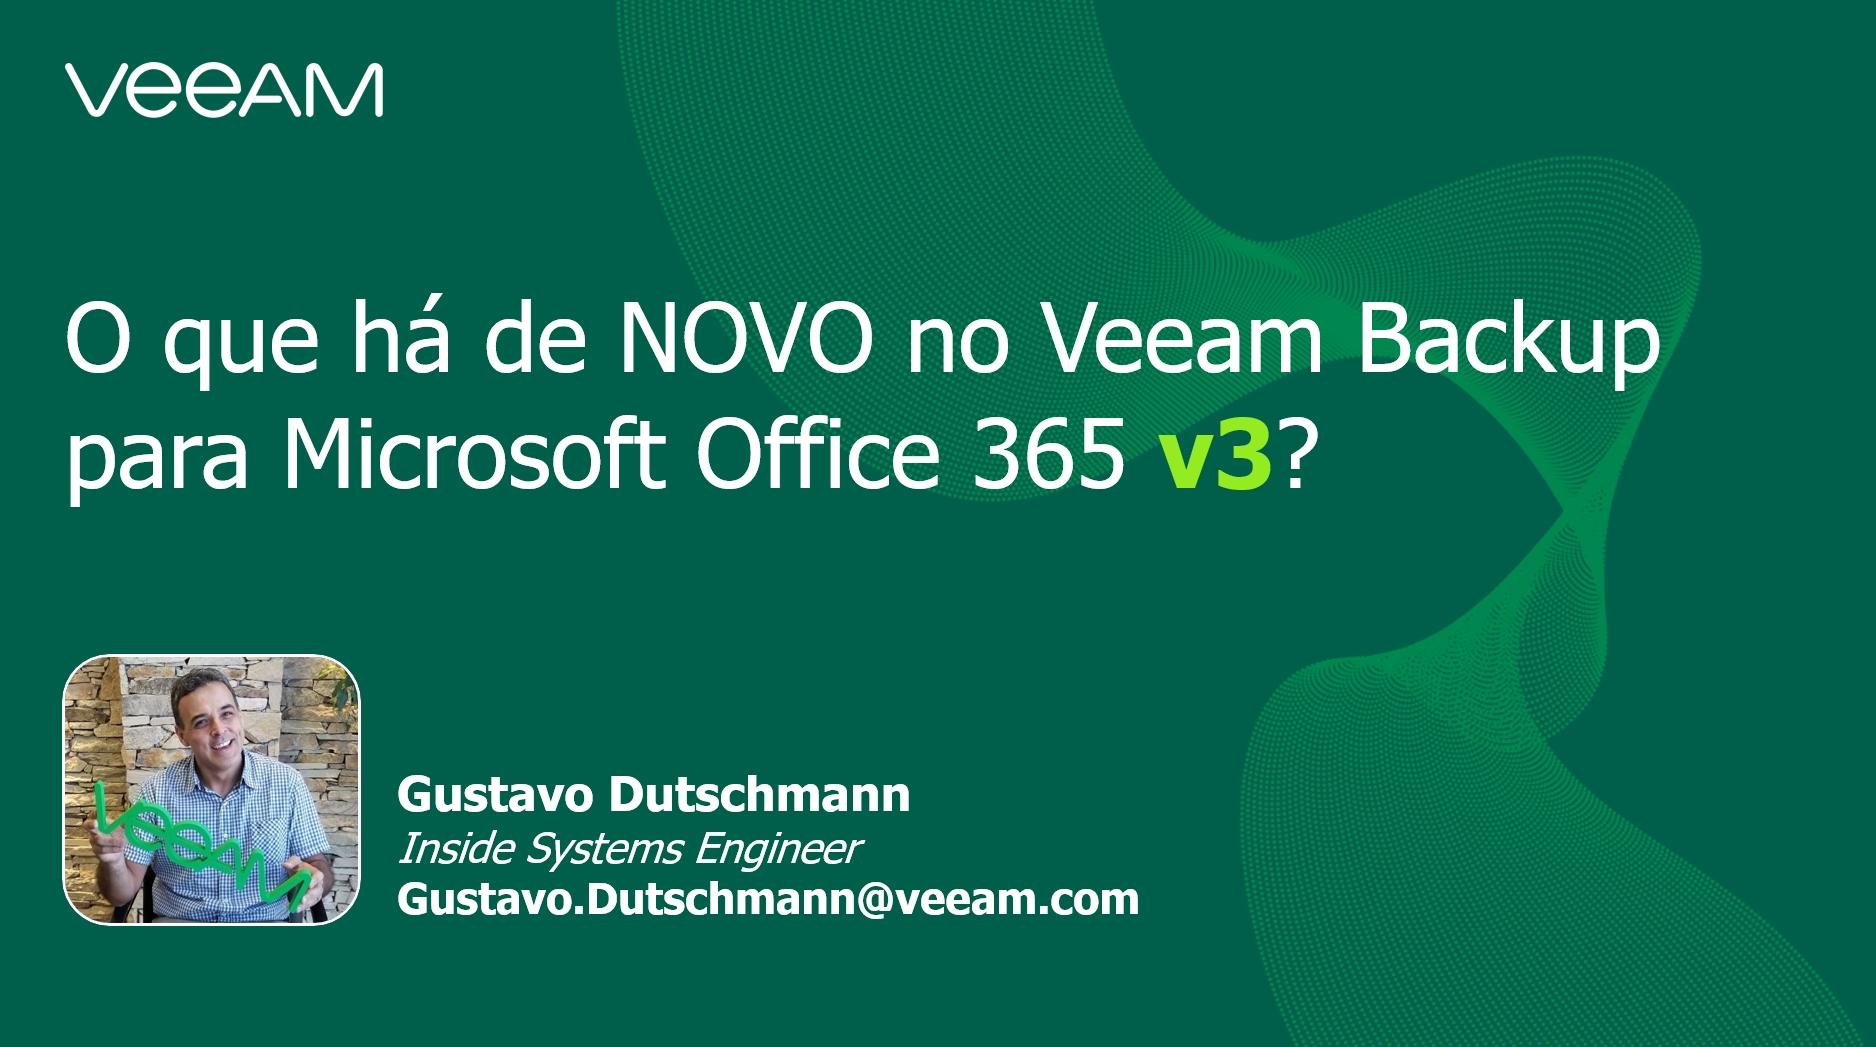 O que há de NOVO no Veeam Backup para Microsoft Office 365 v3?